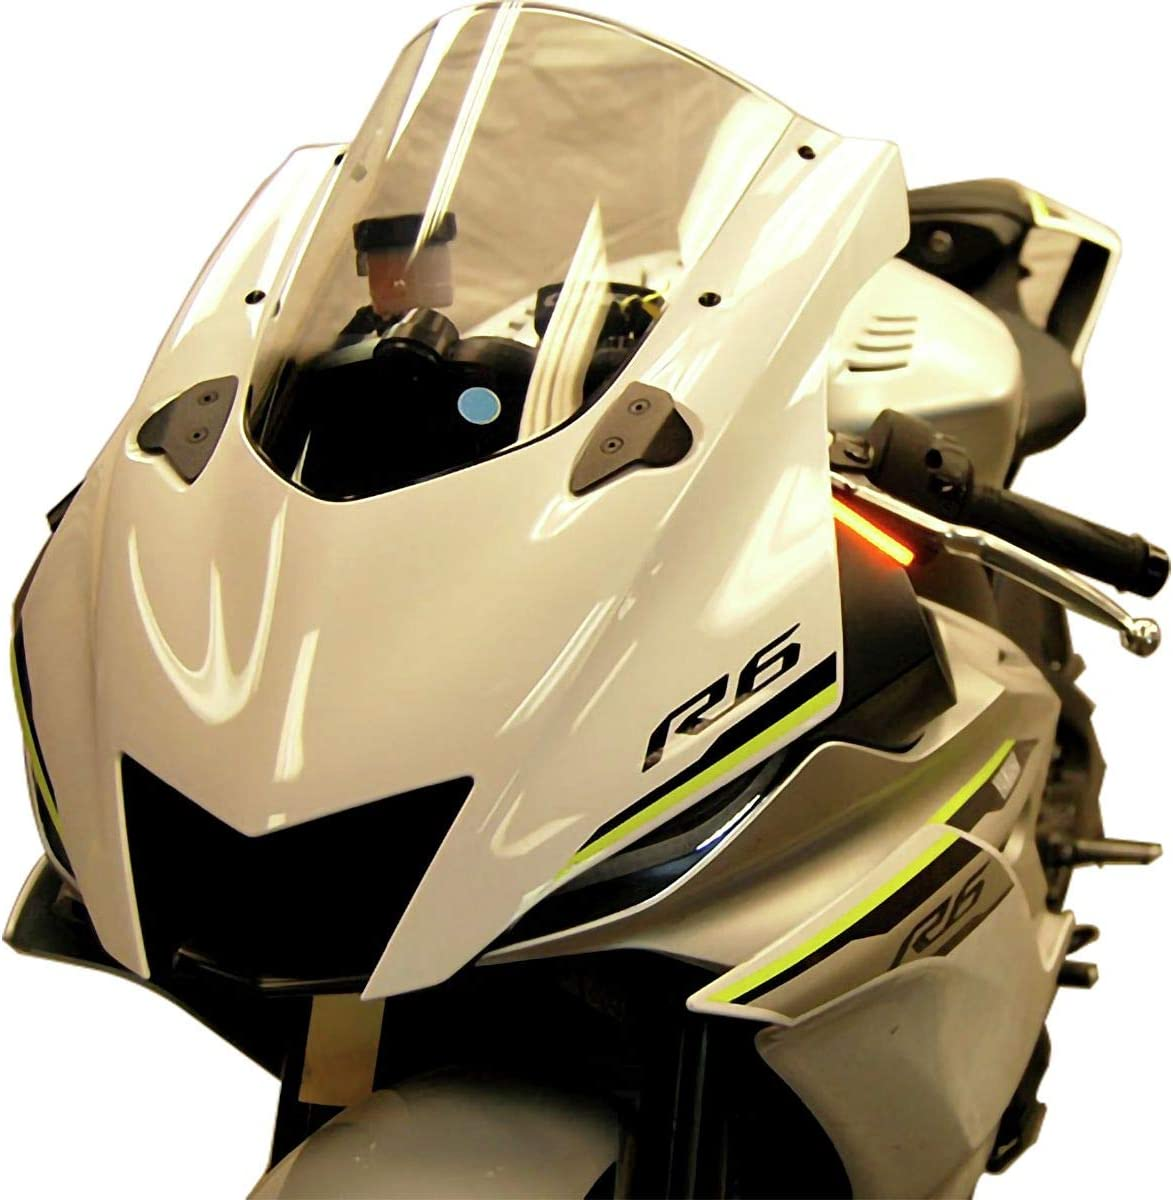 Yamaha R6 Front Turn Signals - Cycles Rage Free Cheap mail order shopping Shipping Cheap Bargain Gift New 2017-Present